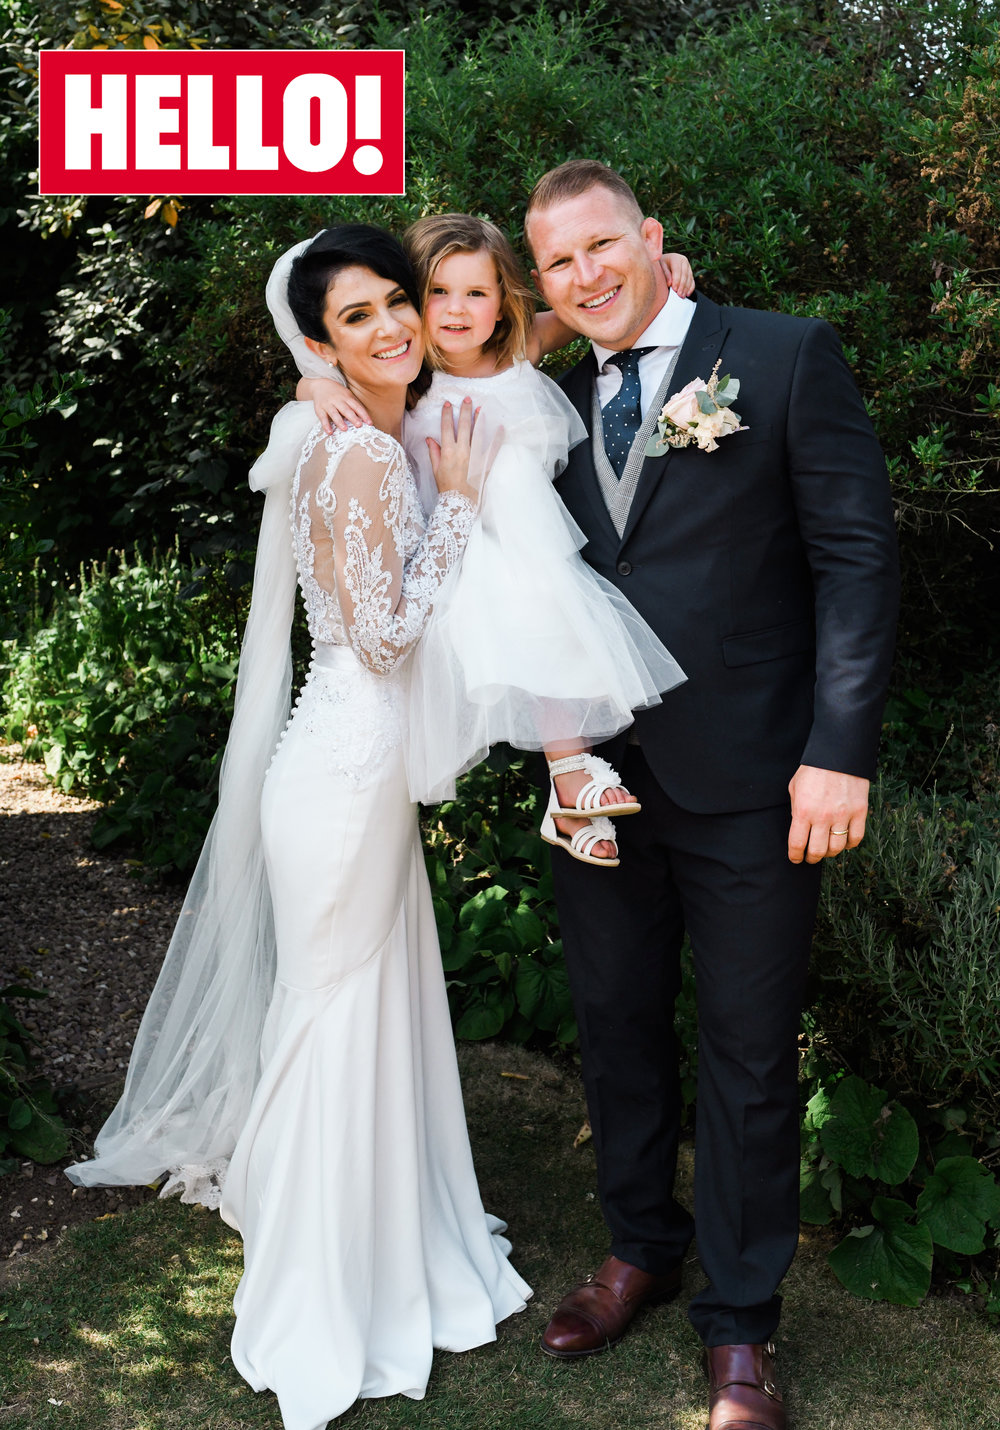 The radiant bride Joanne Tromans with her new husband, Dylan Hartley, as seen in Hello! magazine.